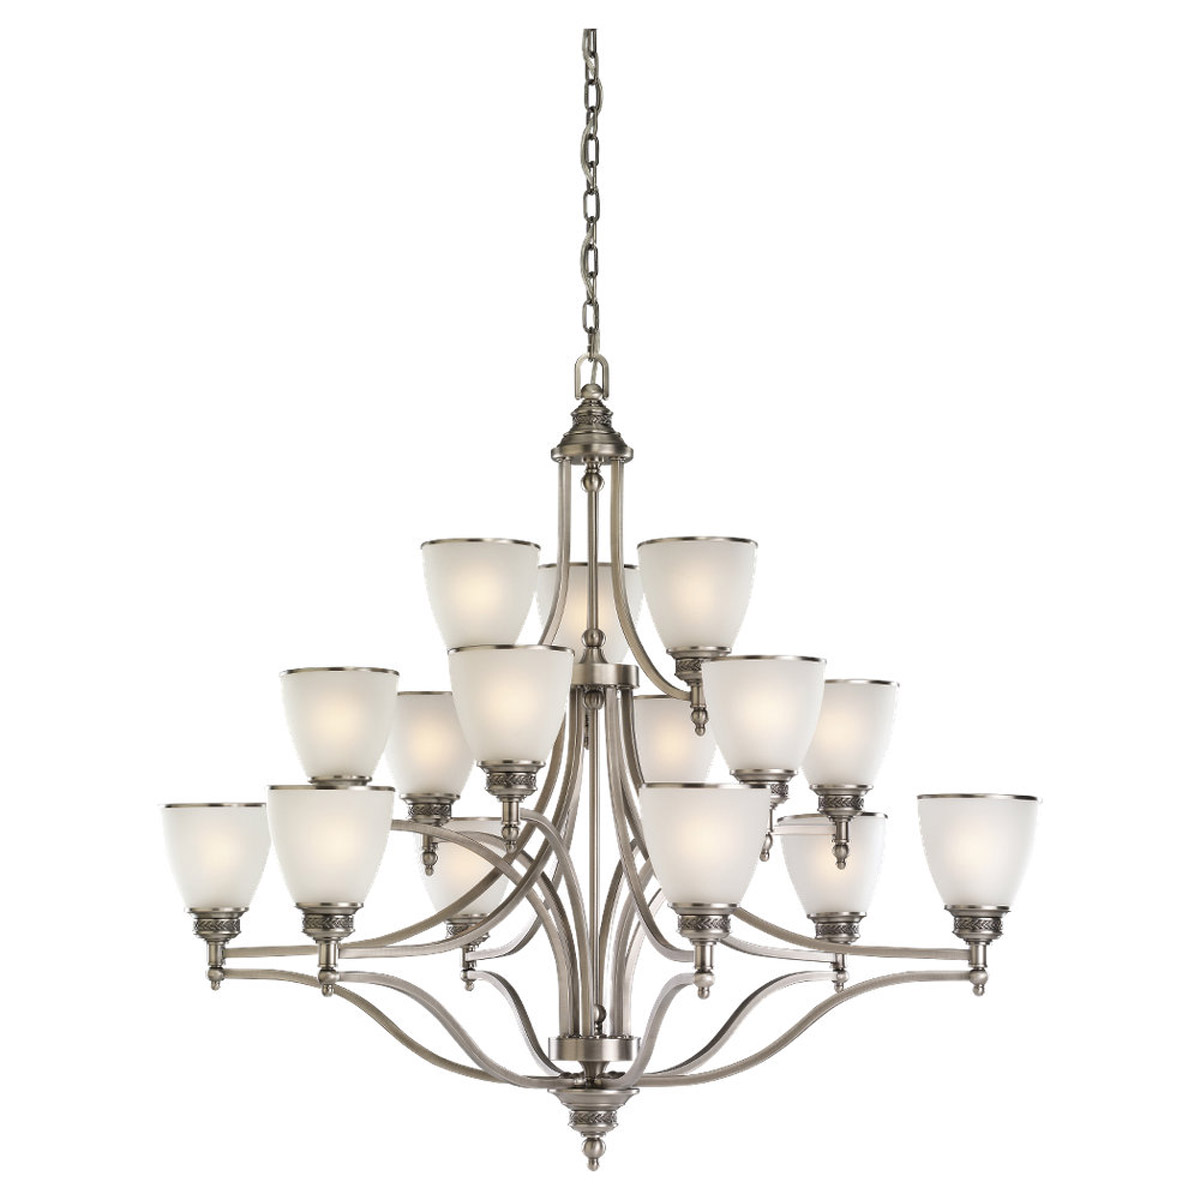 Sea Gull Lighting Laurel Leaf 15 Light Chandelier in Antique Brushed Nickel 31352-965